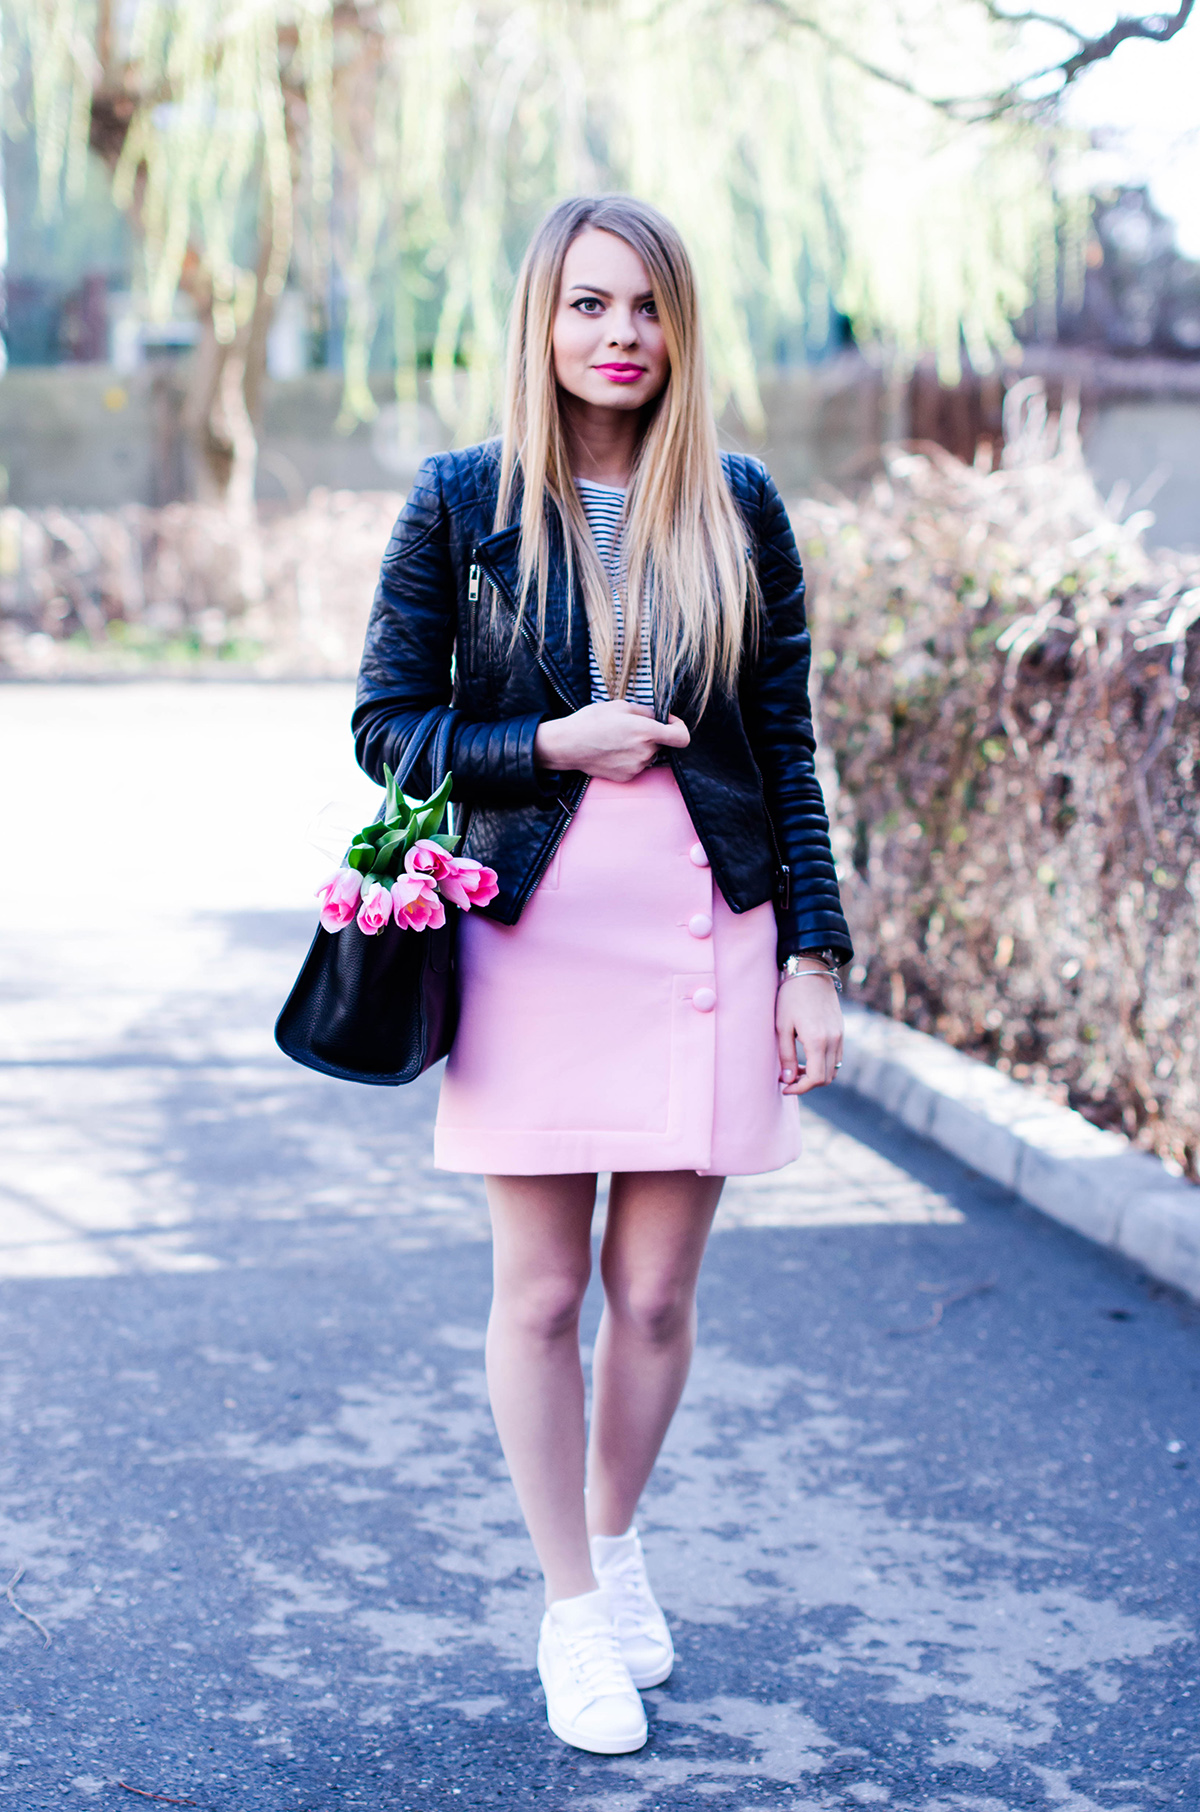 pink-a-line-skirt-adidas-stan-smith-leather-jacket-spring-outfit-pink-tulips (5)